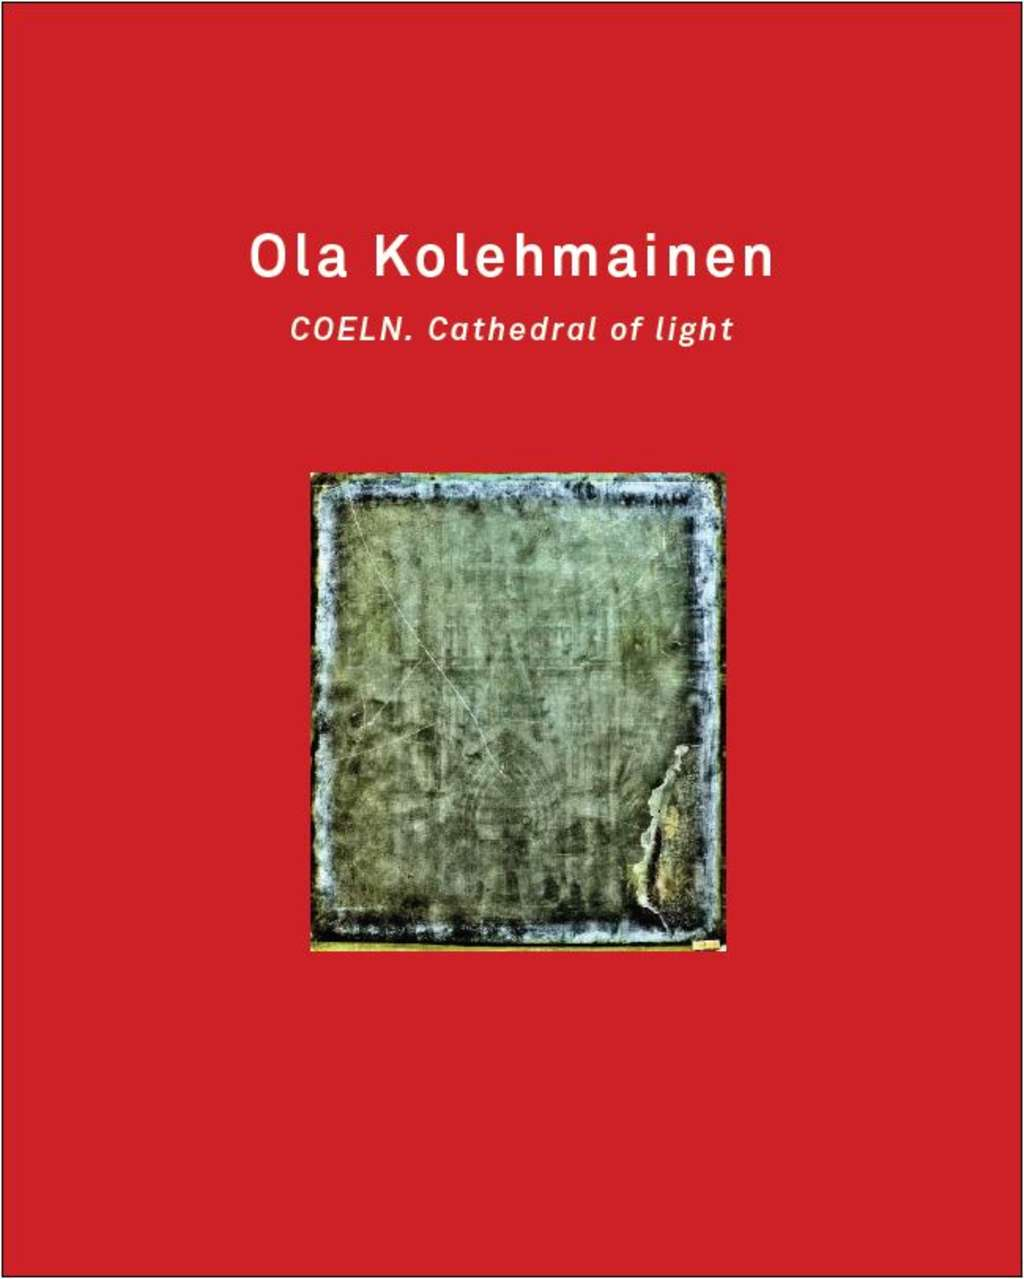 Ola Kohlemainen. Cathedral of light. Katalog zur Ausstellung. Cover